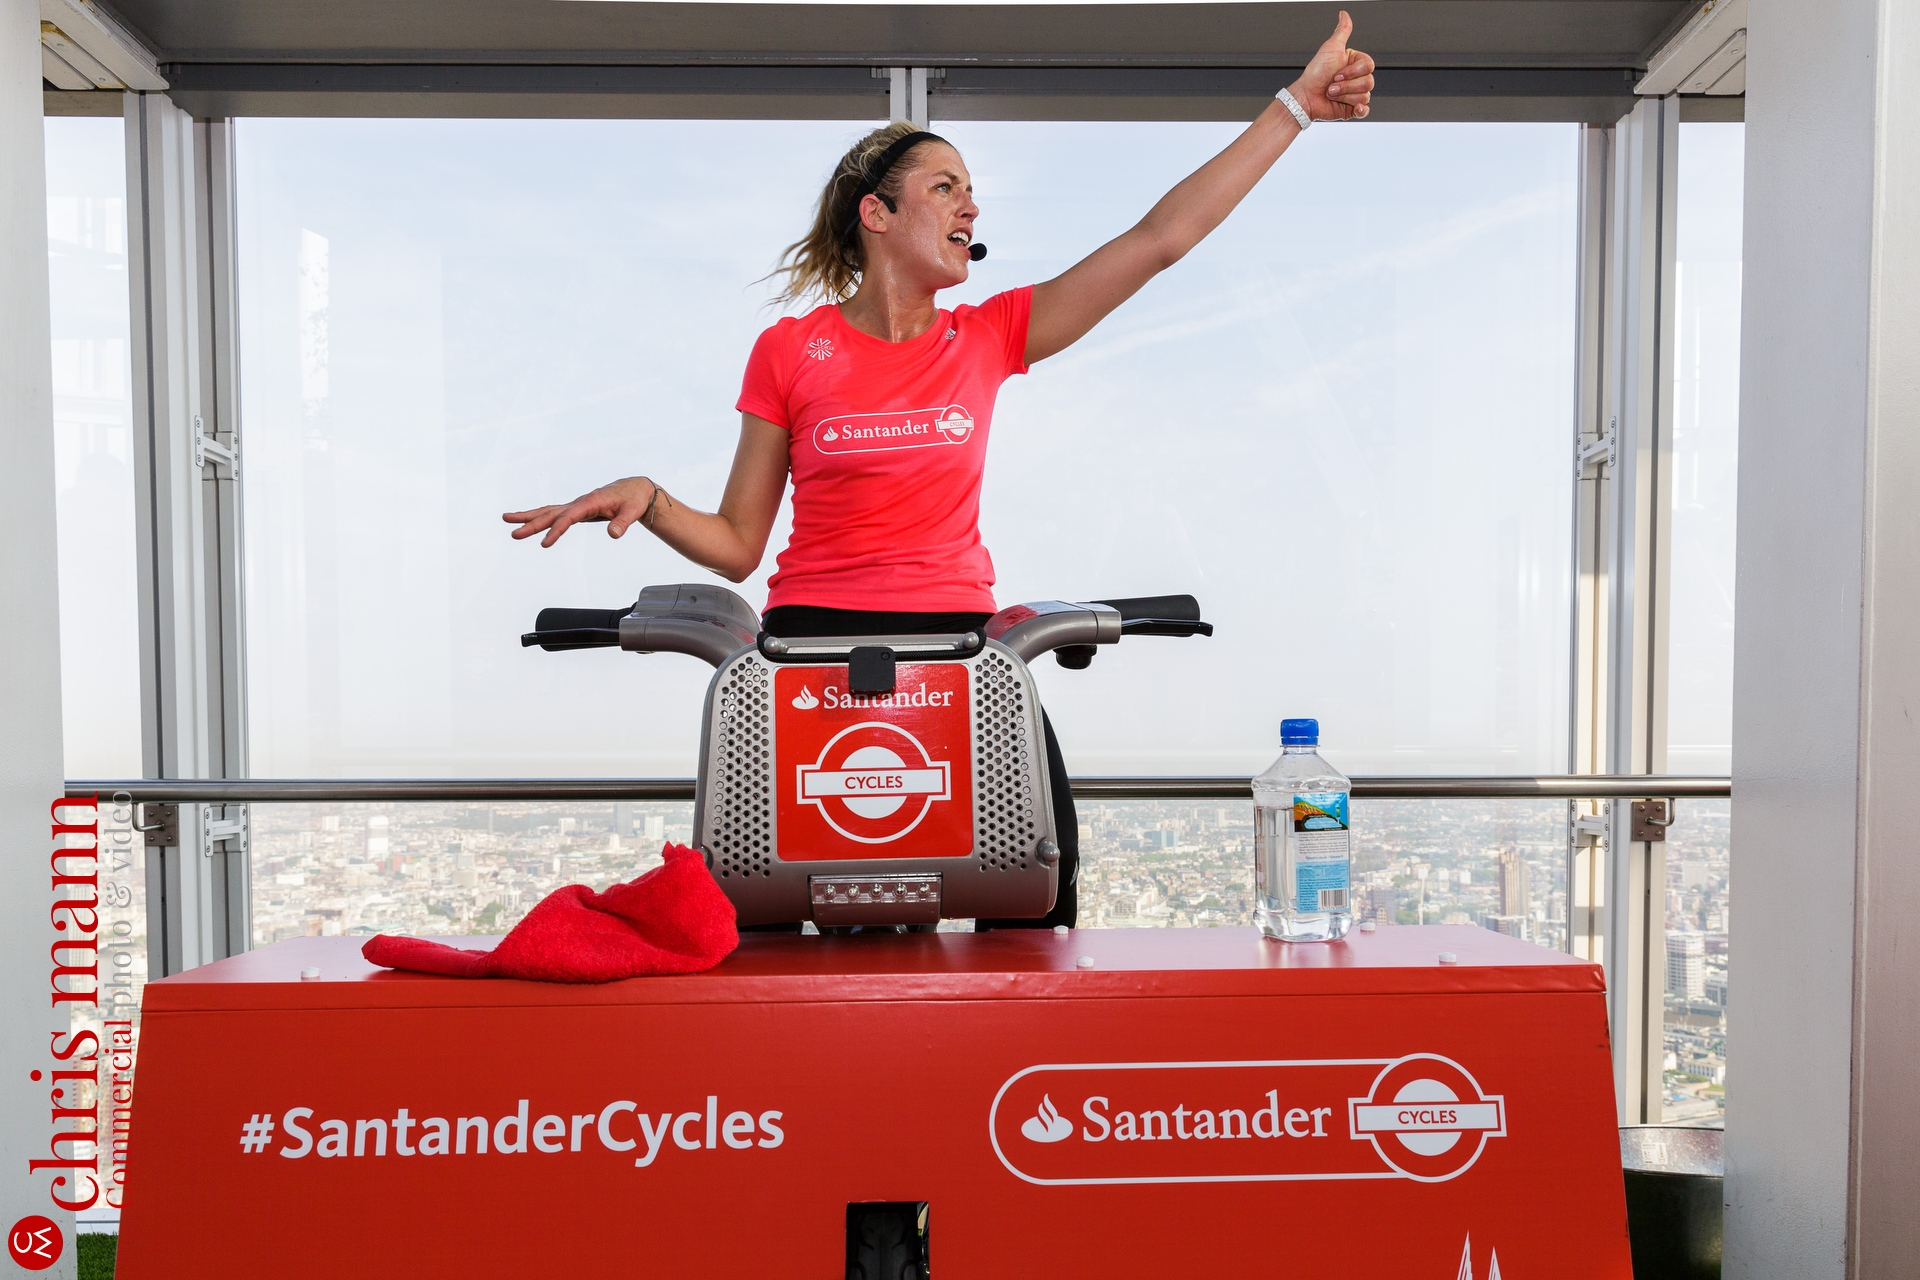 Santander-Cycles-spin-up-class-The-Shard-036